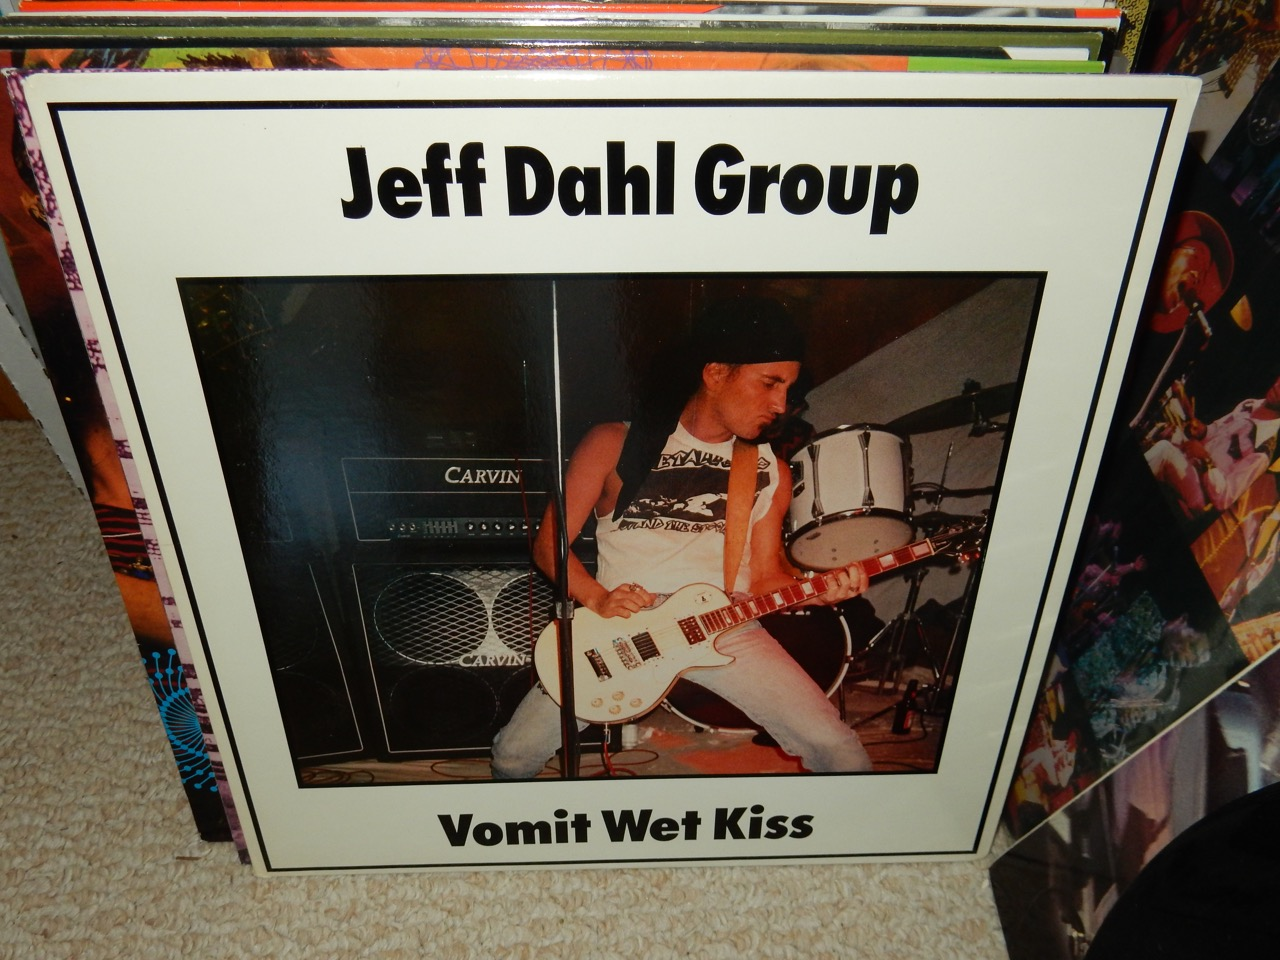 """Jeff Dahl Group """"Vomit Wet Kiss"""" 1988 Vinyl LP Sympathy For The Record Industry"""